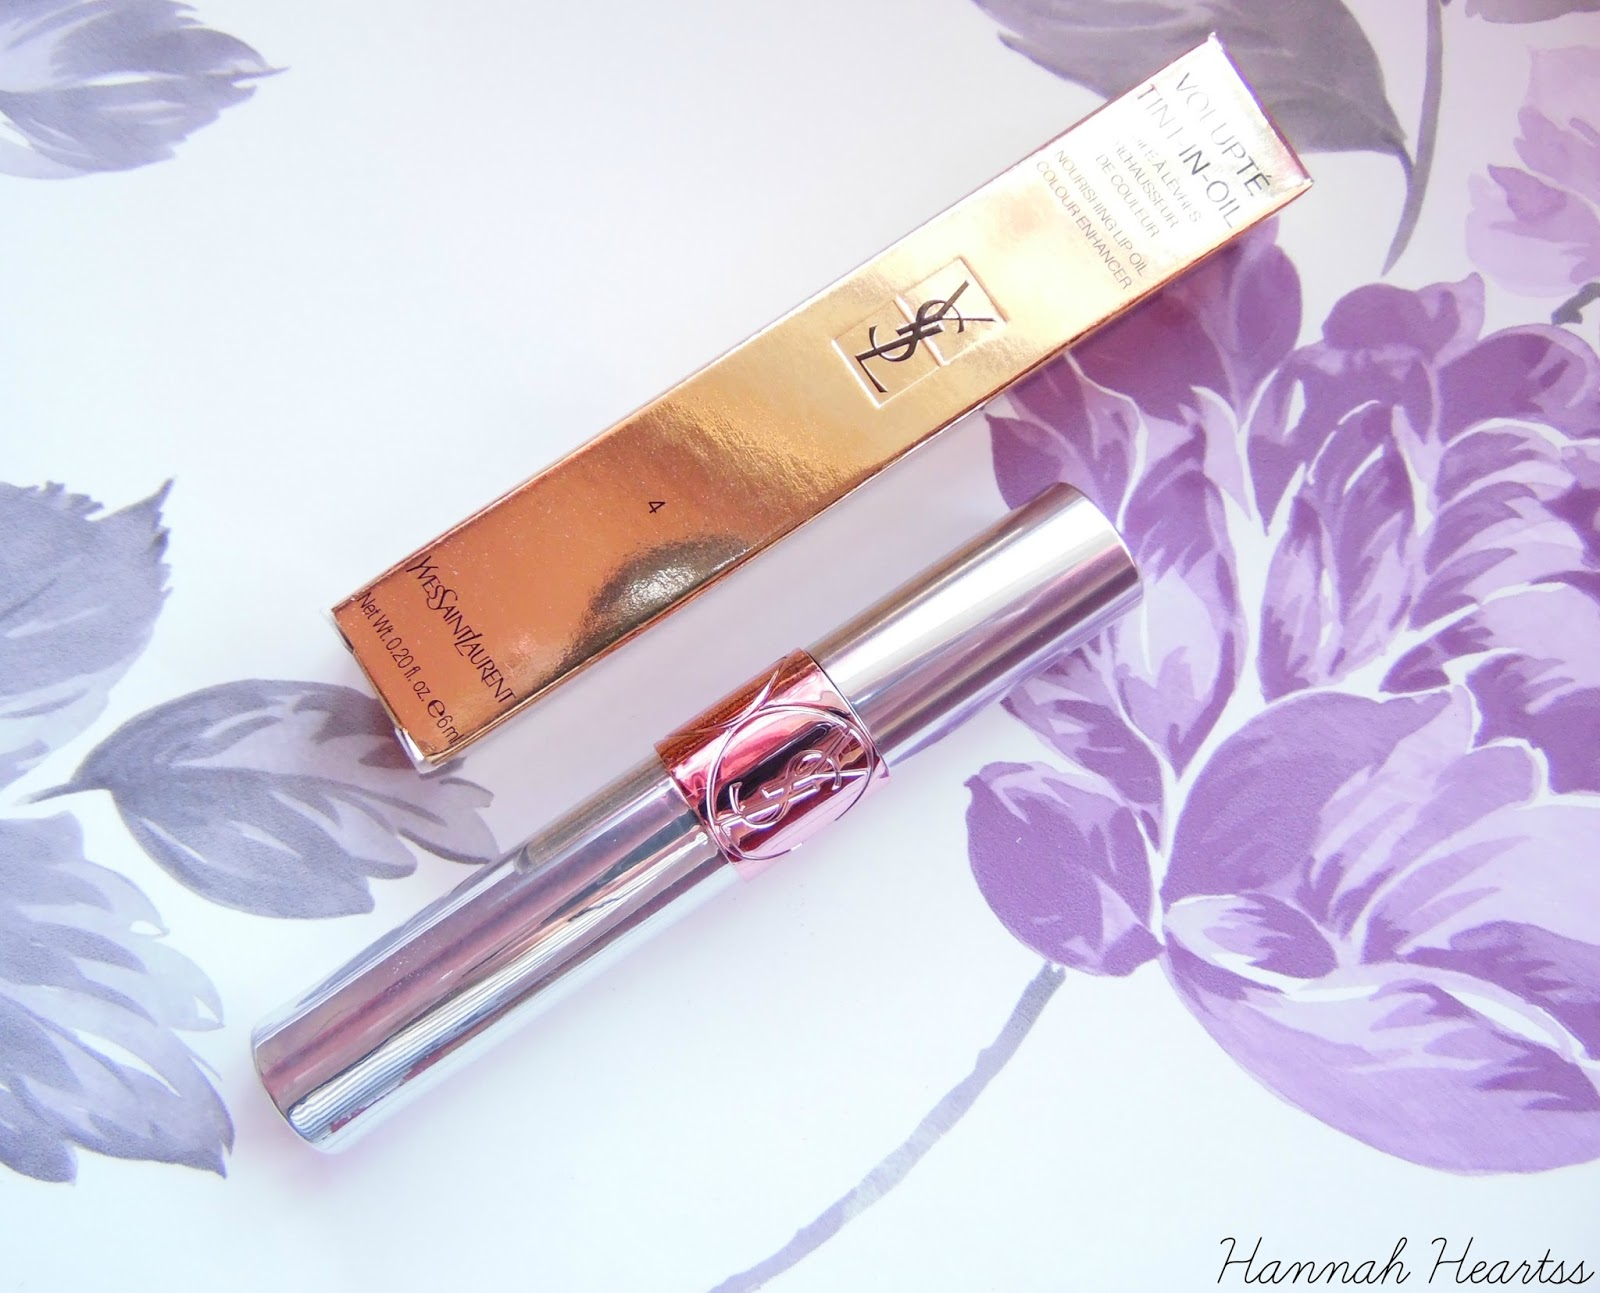 YSL Volutpé Tint-In-Oil